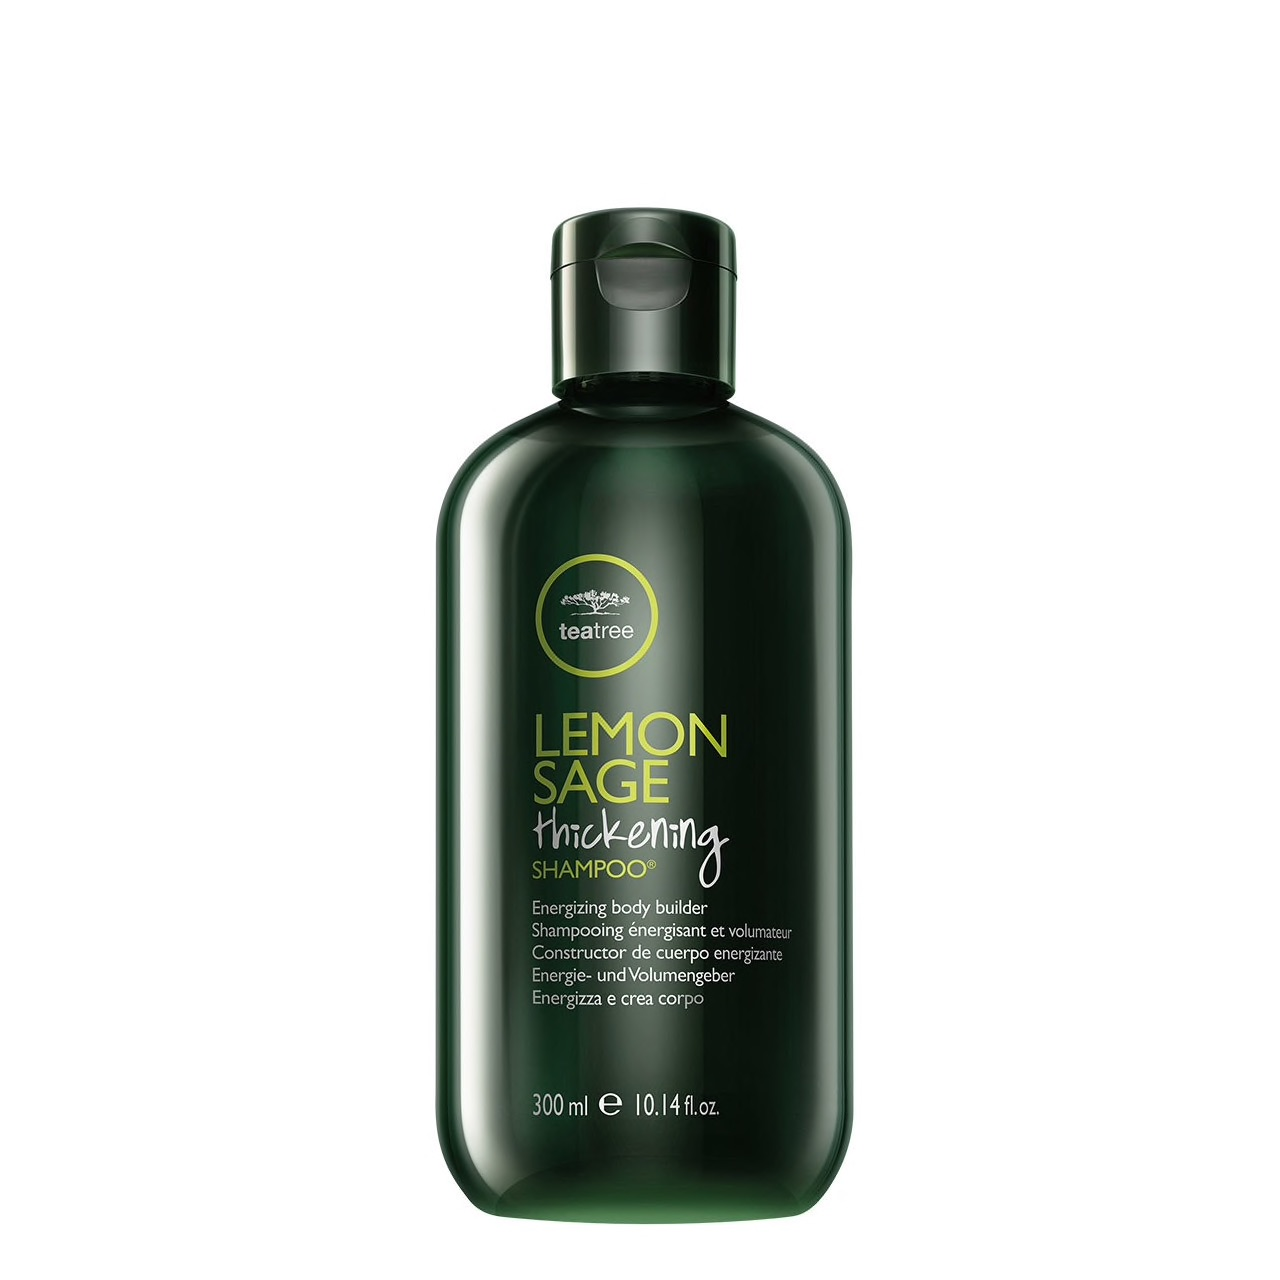 Lemon Sage Thickening Shampoo by Paul Mitchell